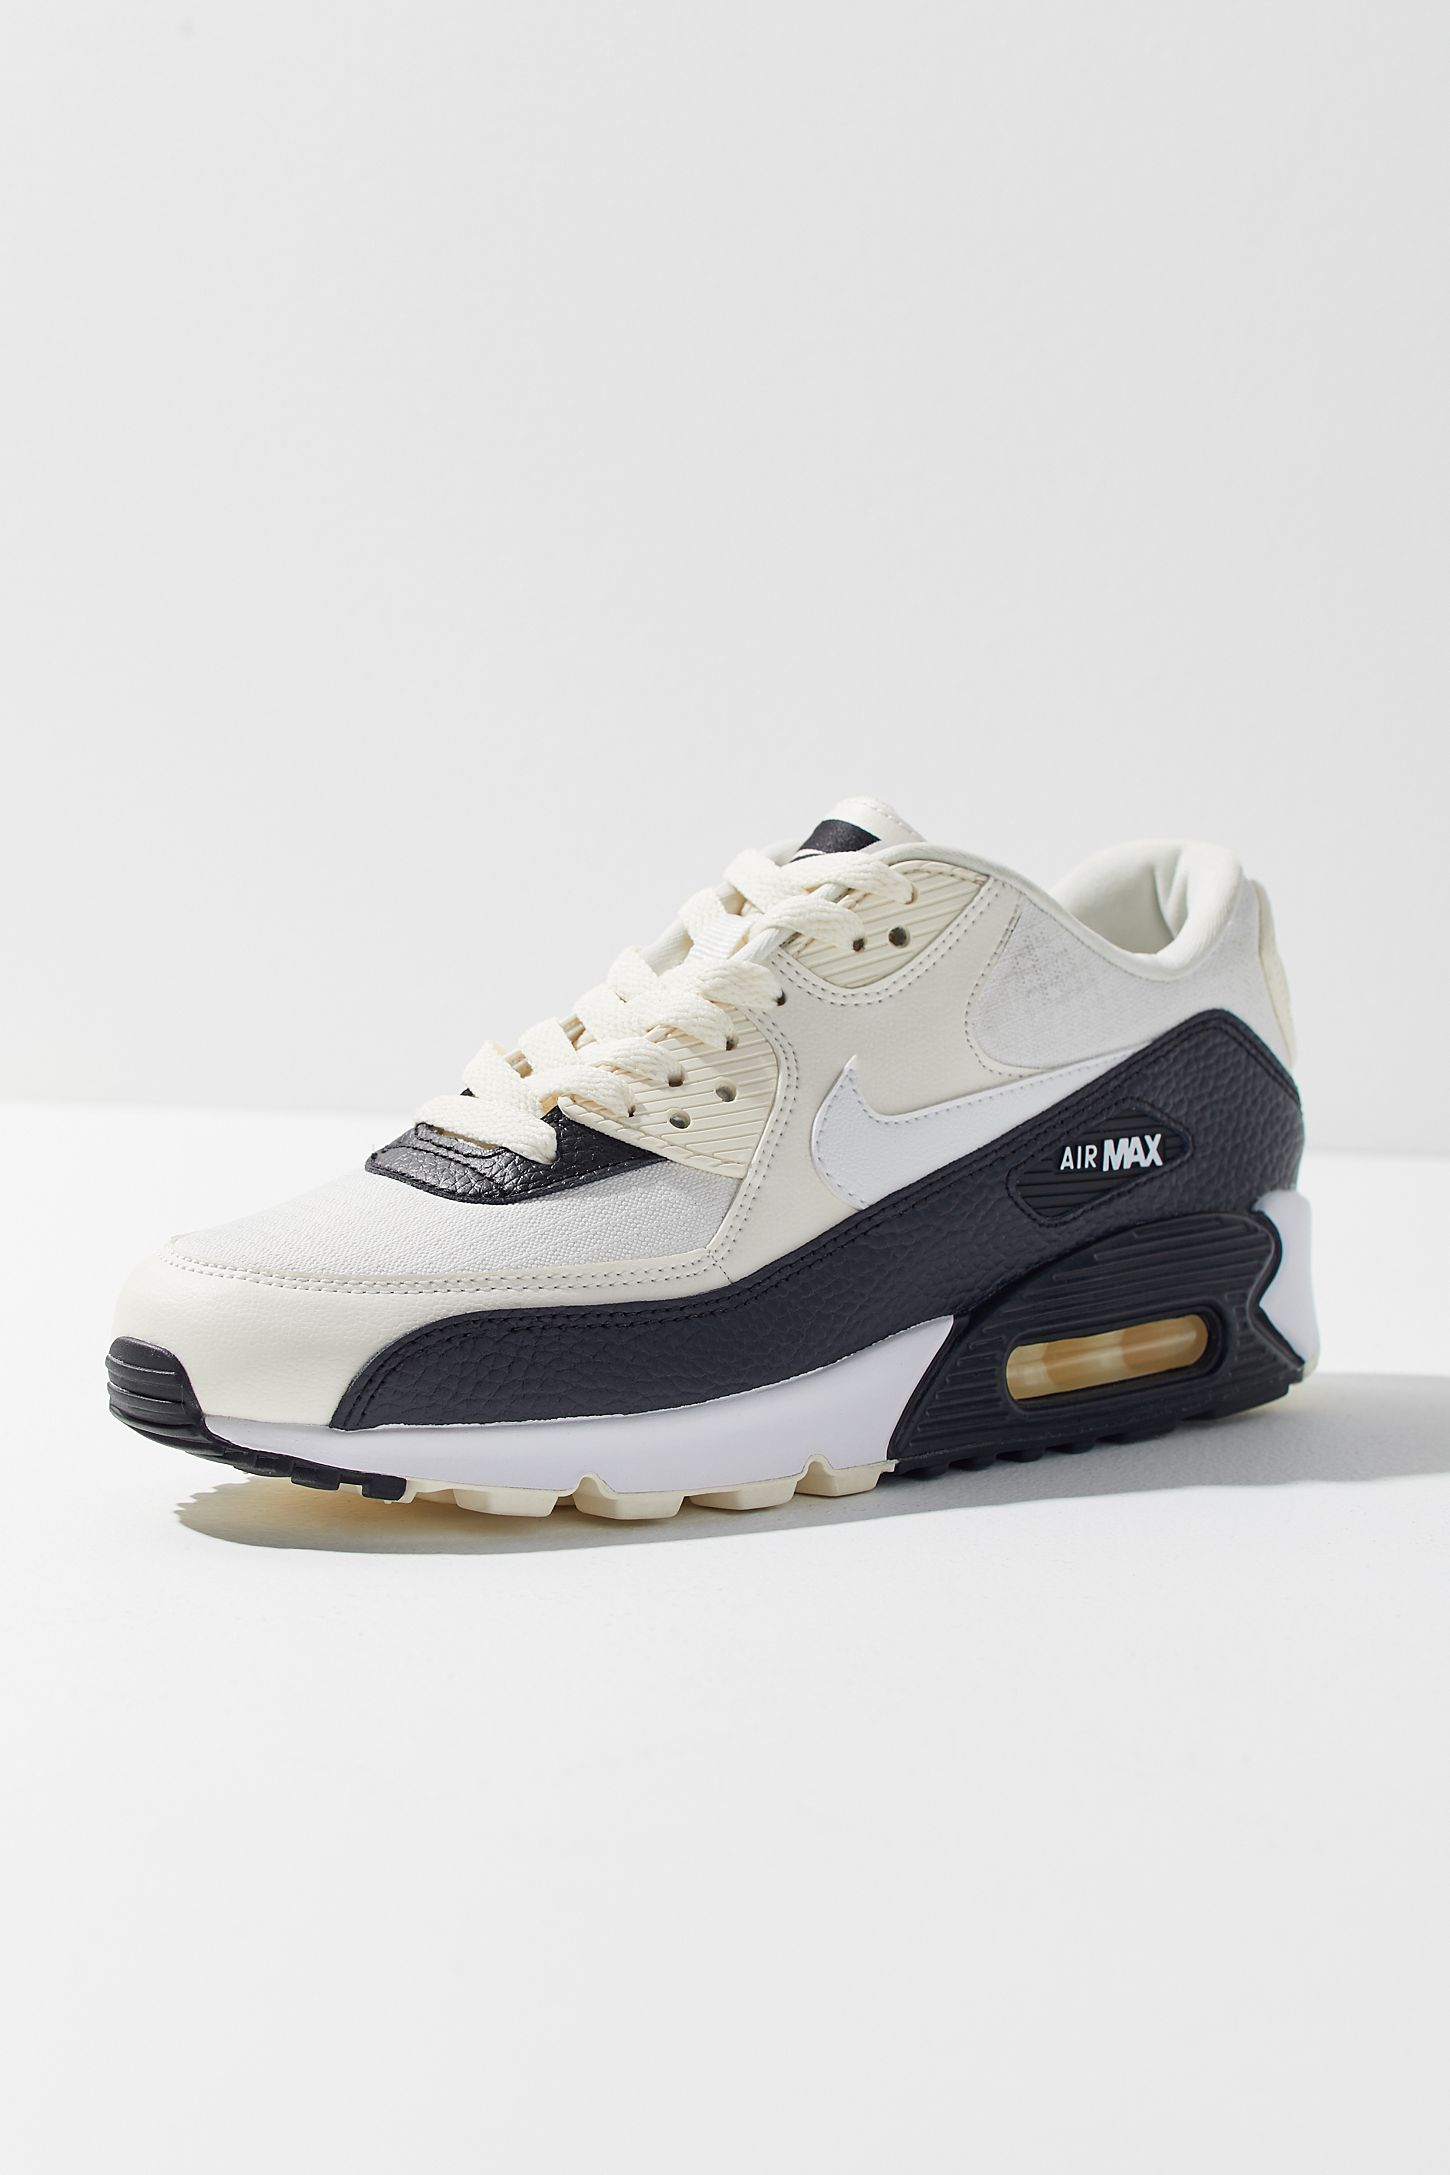 Urban Outfitters x Nike Nike Air Max 90 Women's Sneaker Beige 5 at Urban Outfitters from Urban Outfitters (US) People  People